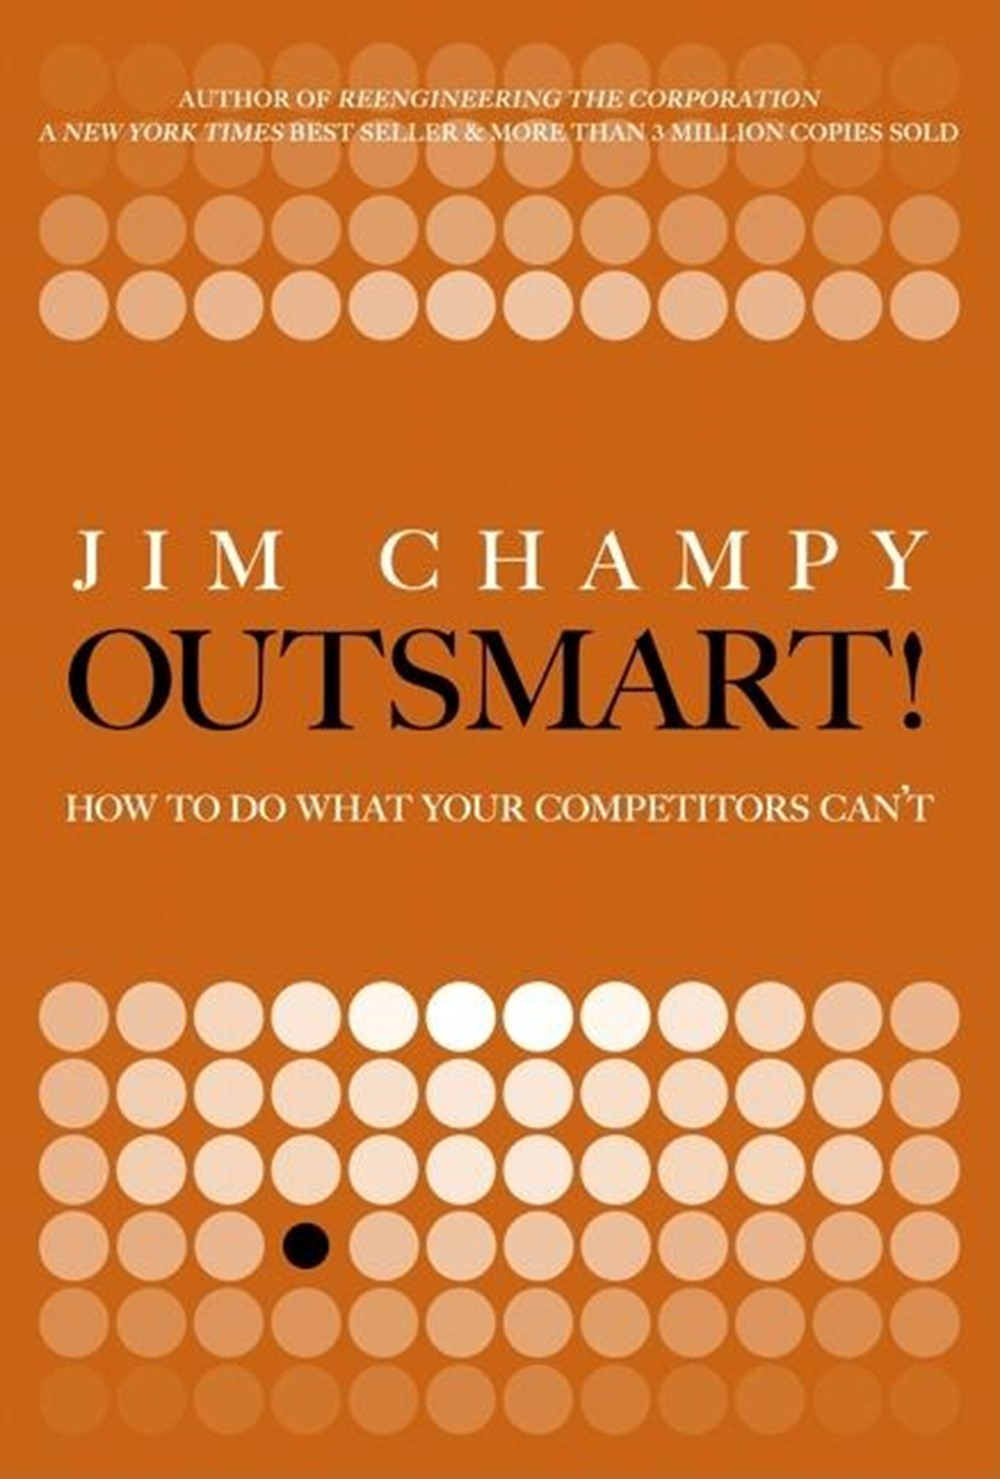 Outsmart! How to Do What Your Competitors Can't